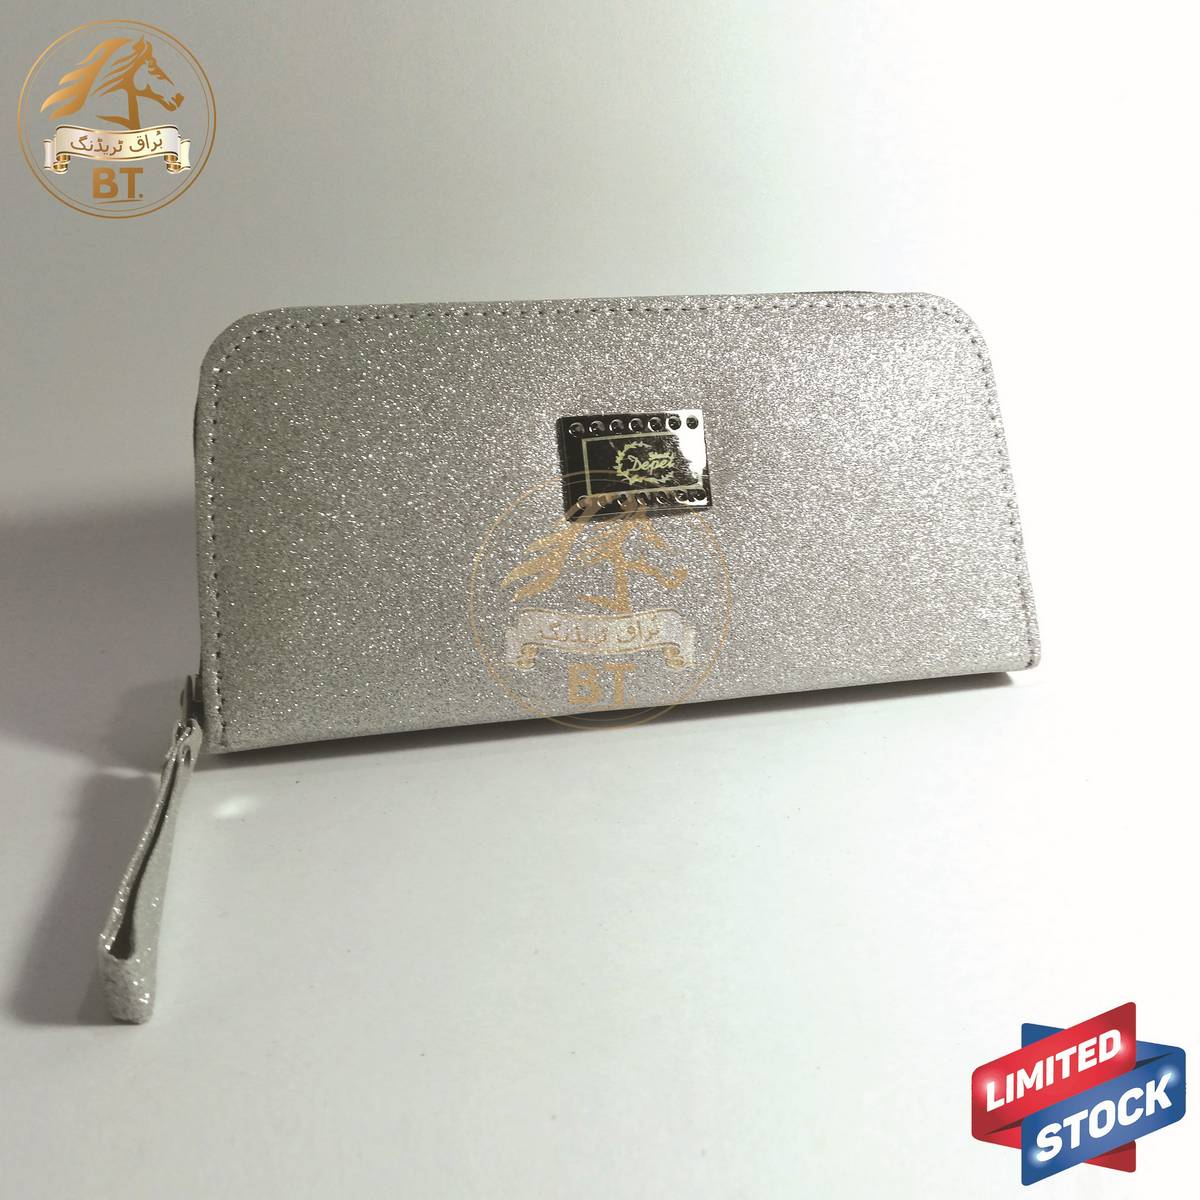 Silver Glitter Evening Hand Purse for Girl's Women's Wedding, Party, Events Purse - 19cm x 9cm x 3cm